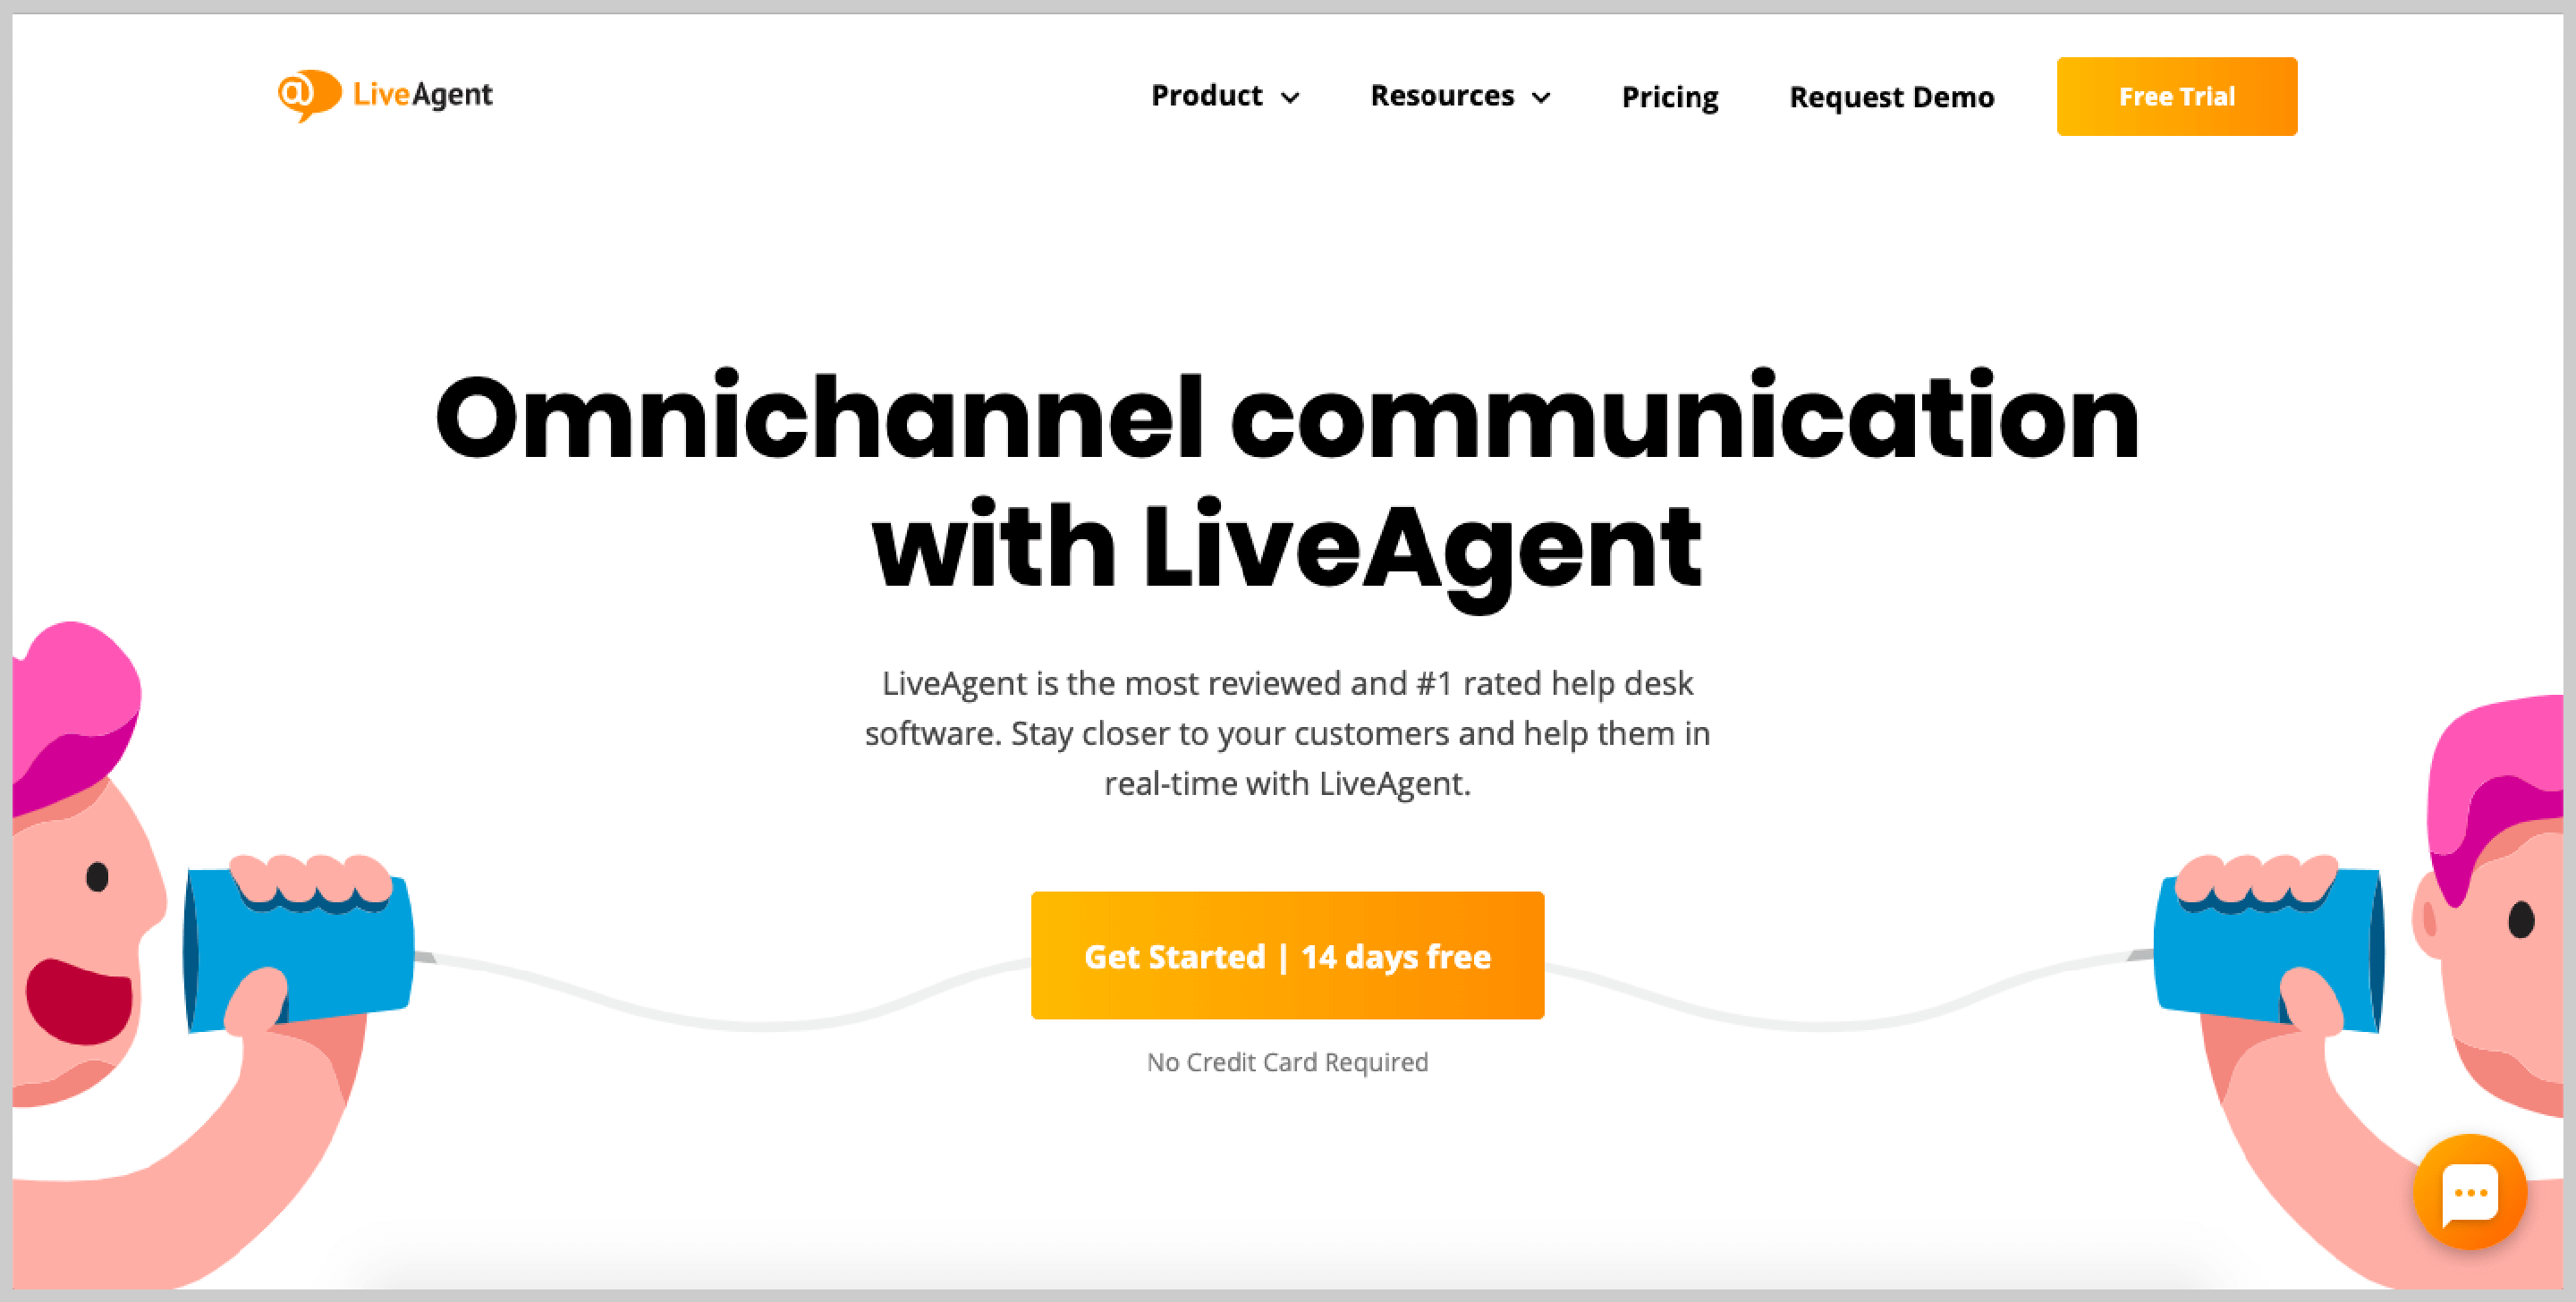 LiveAgent is yet another customer service software in our list that serves large enterprises like BMW, Yamaha, Huawei etc. in providing robust customer service solutions.